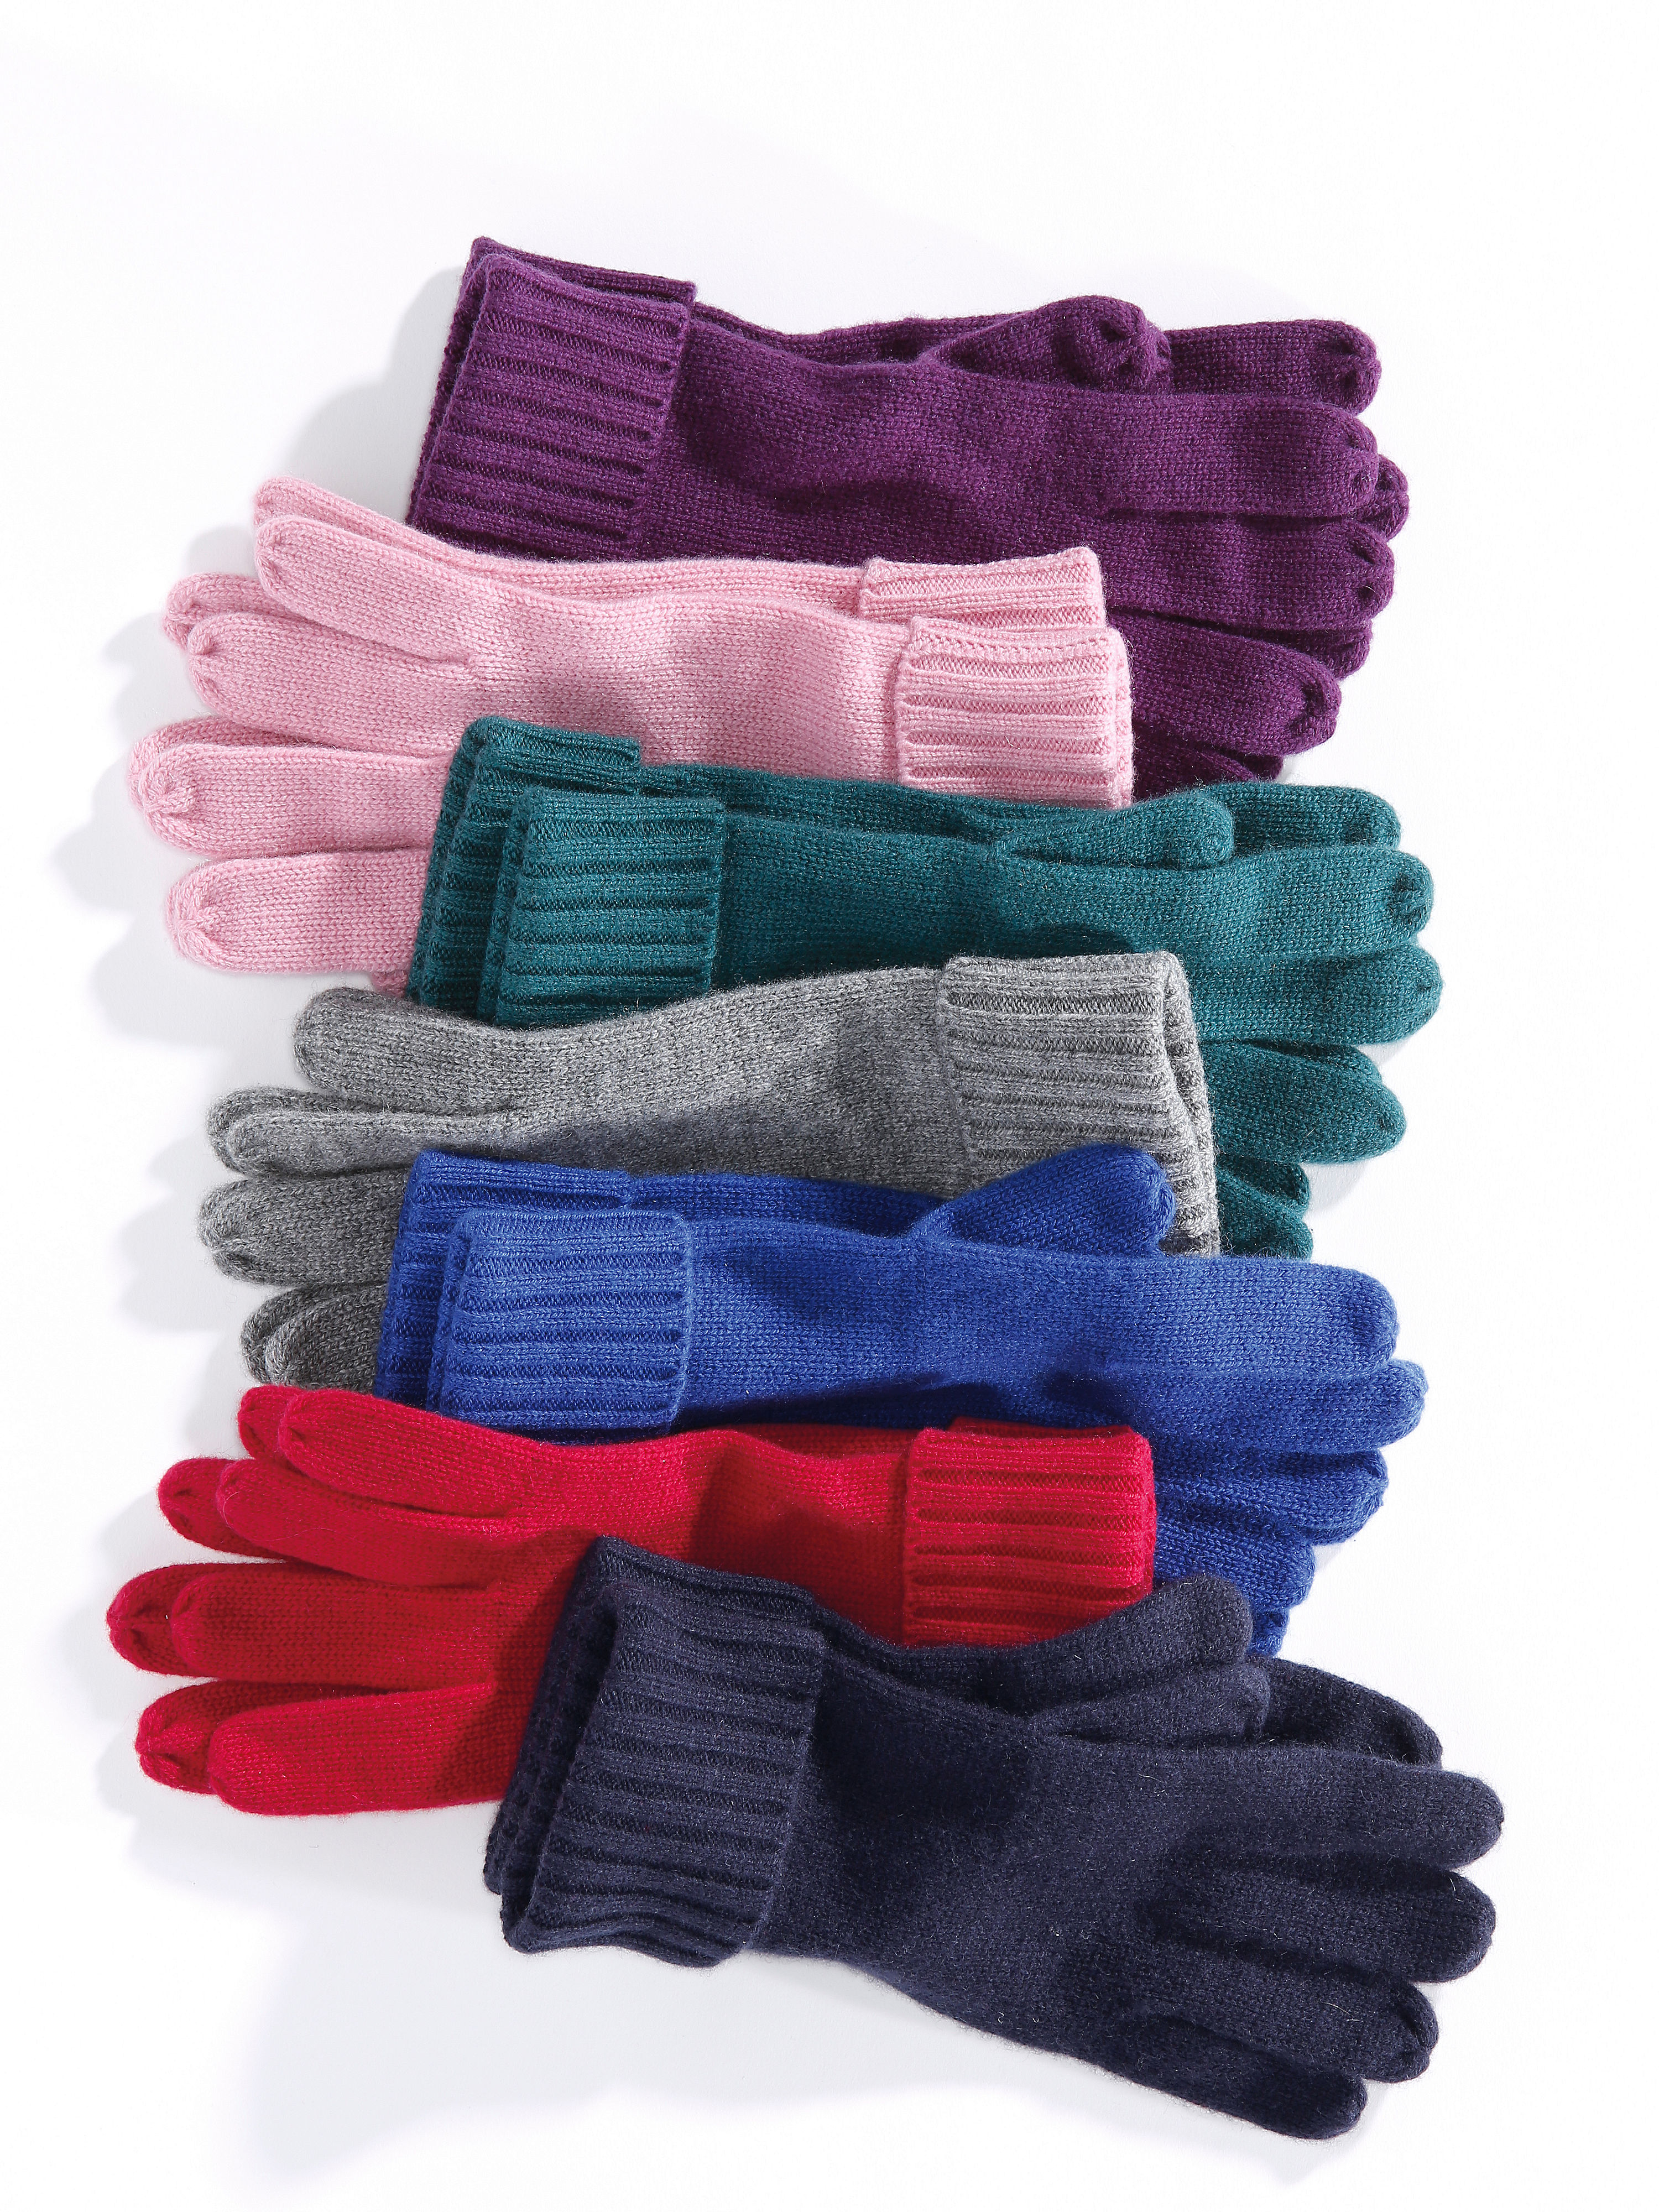 gloves-100-cashmere-from-peter-hahn-cashmere-pale-pink